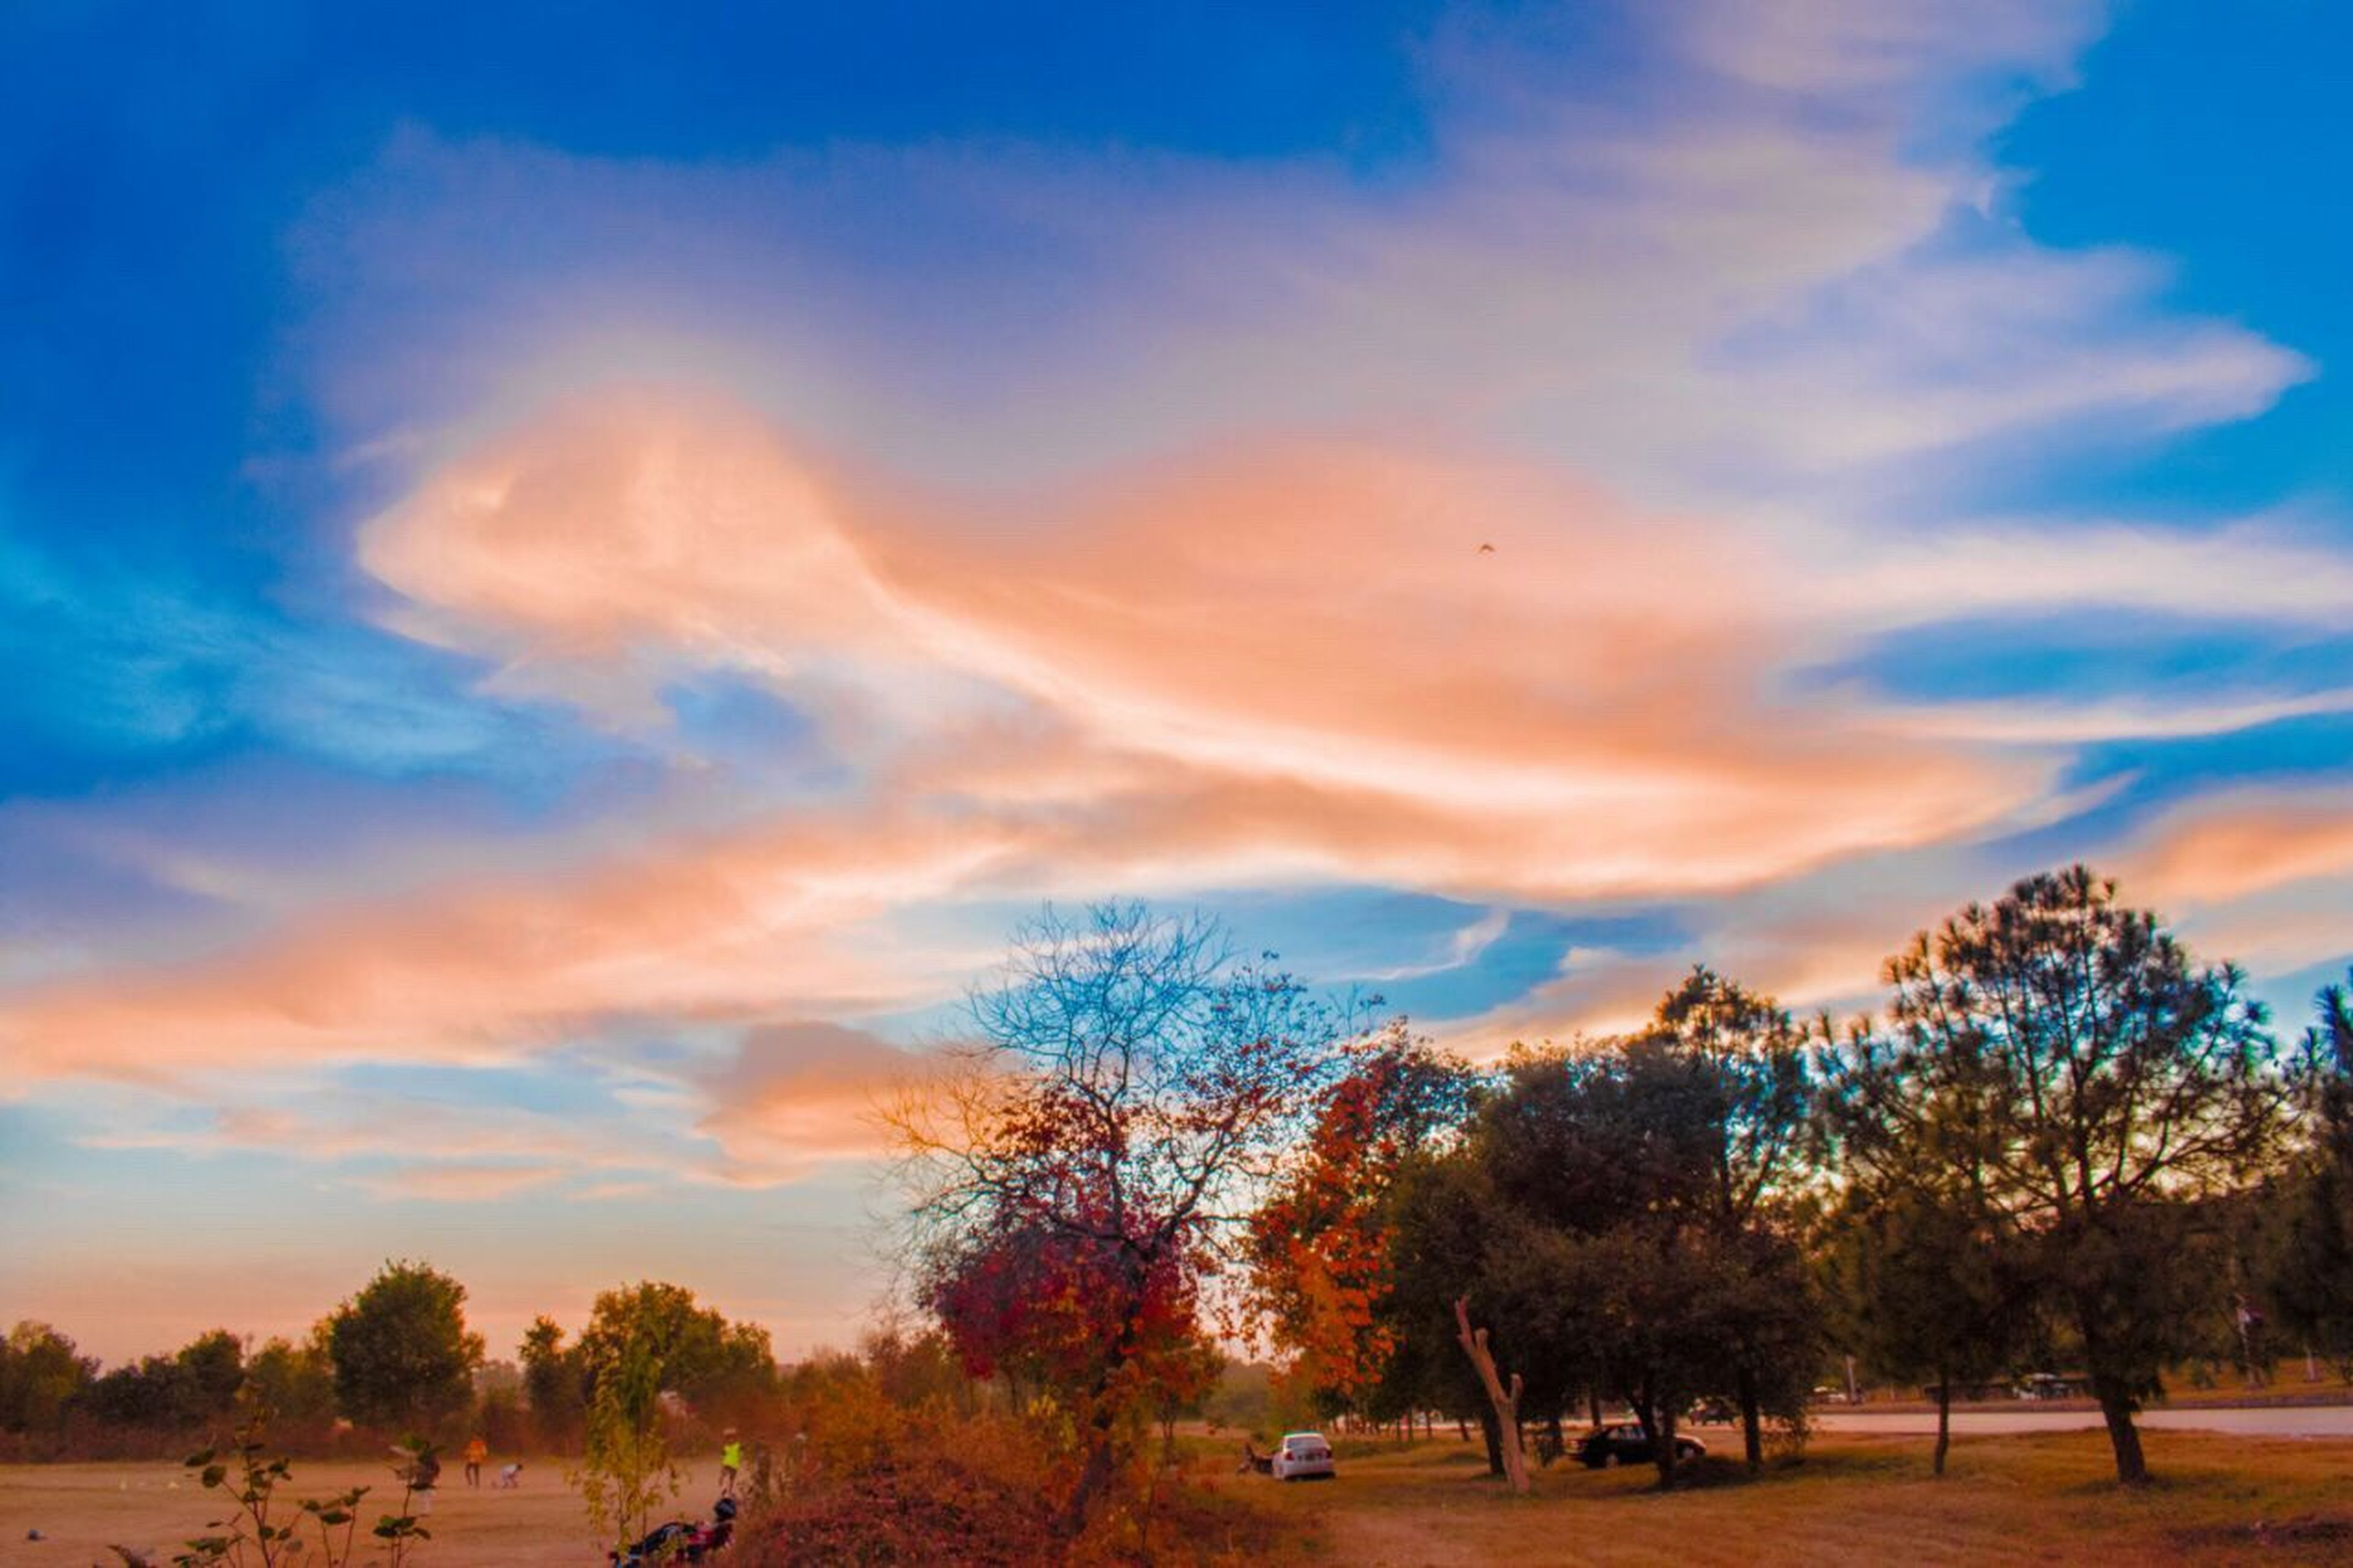 tree, sunset, sky, landscape, no people, nature, beauty in nature, outdoors, scenics, galaxy, day, african elephant